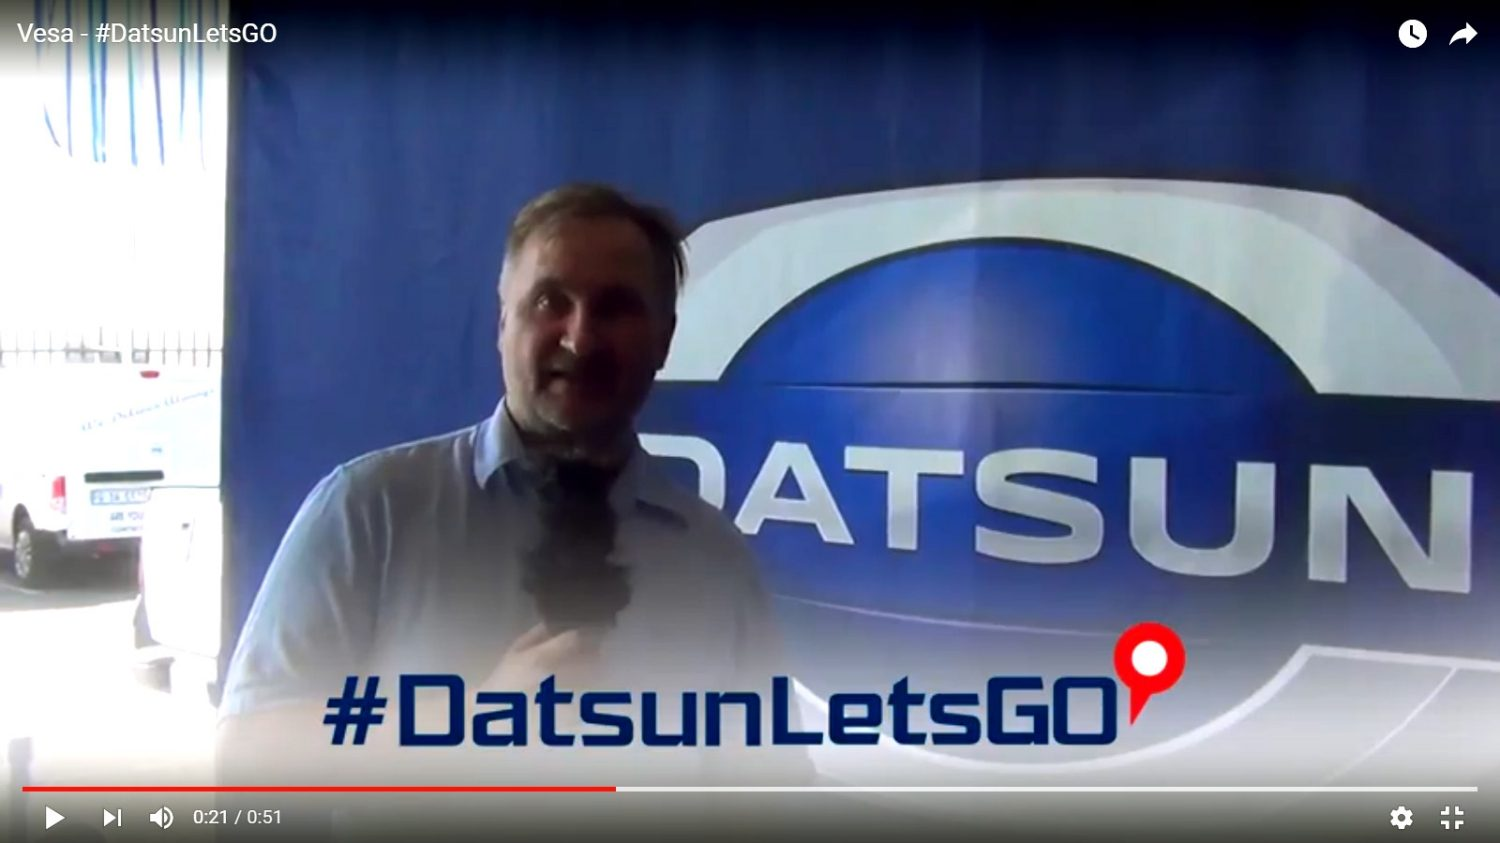 Interview for DatsunLetsGO